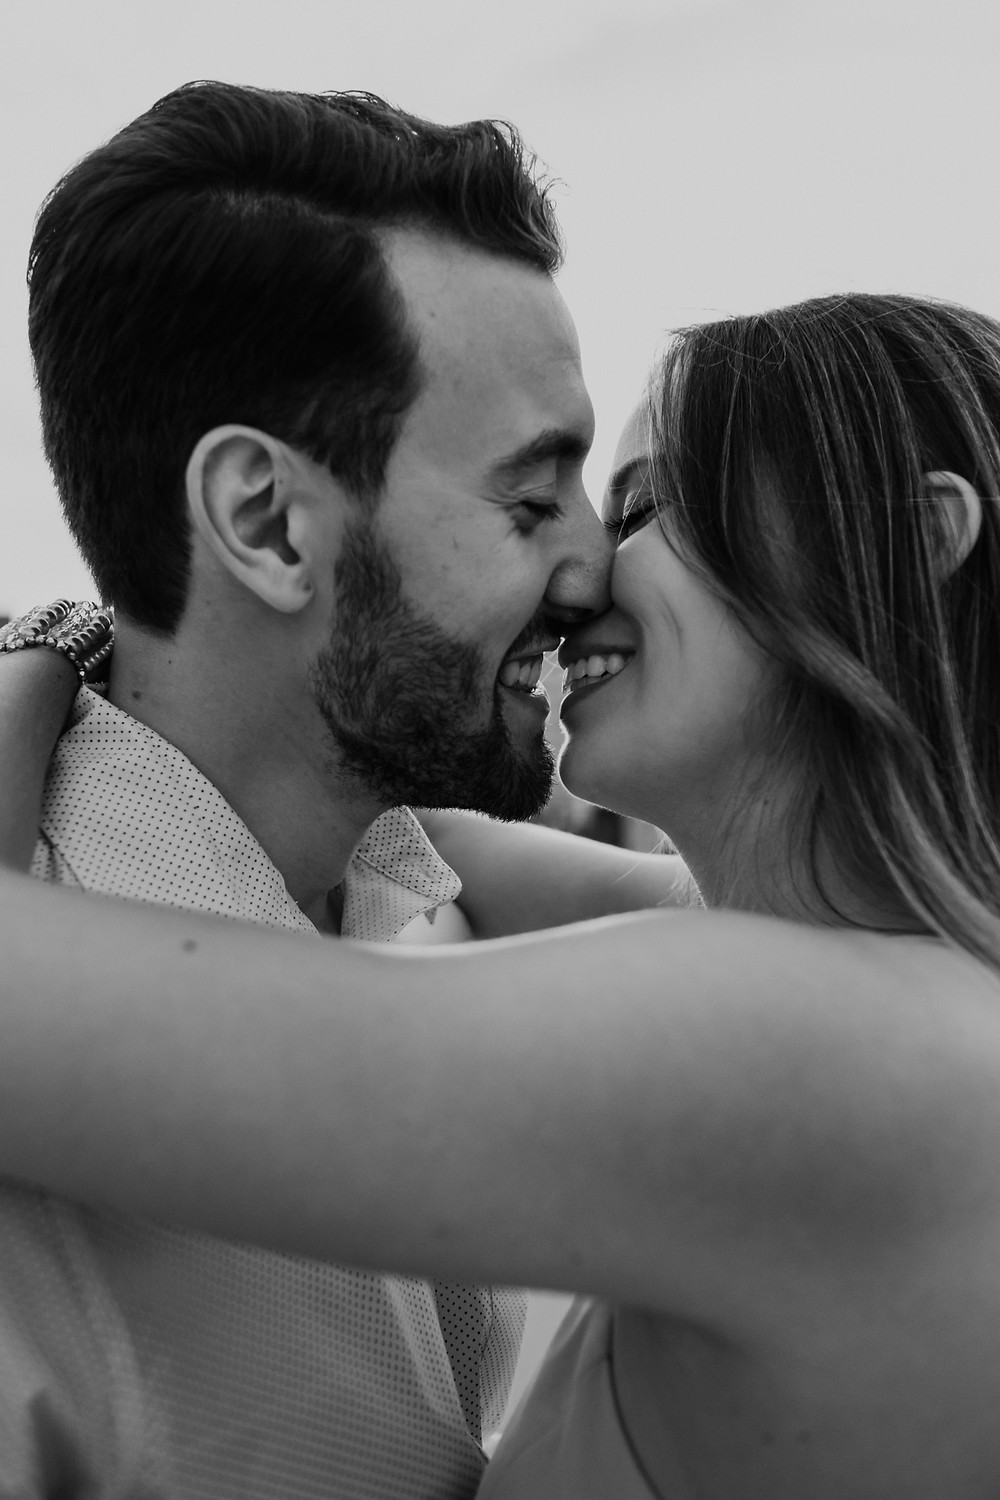 Couple kissing for engagement photos. Photographed by Nicole Leanne Photography.